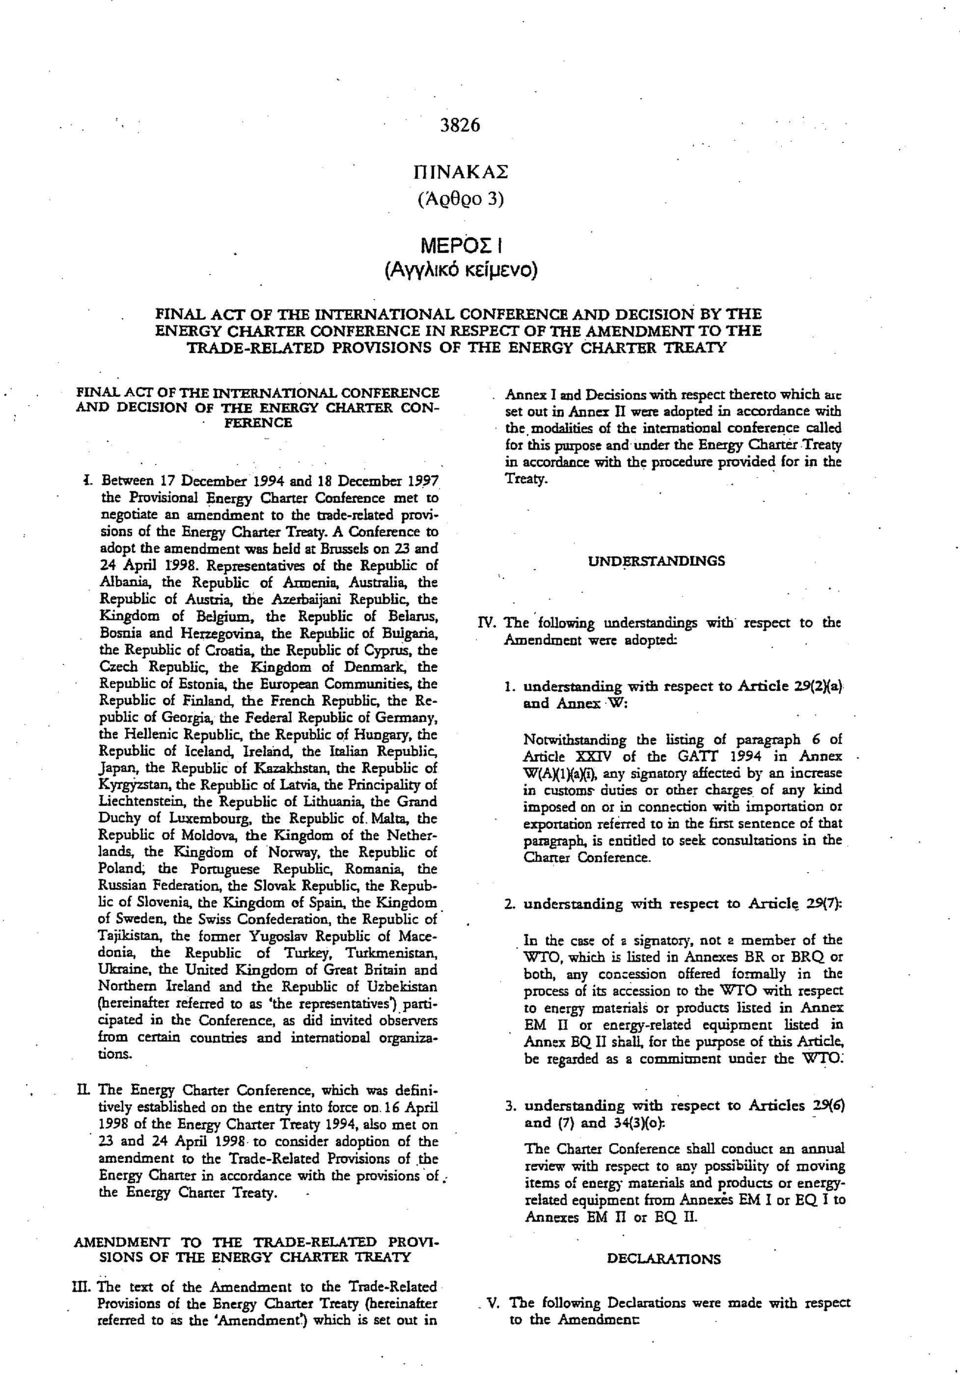 Between 17 December 1994 and 18 December 1597 the Provisional Energy Charter Conference met to negotiate an amendment to the trade related provisions of the Energy Charter Treaty.